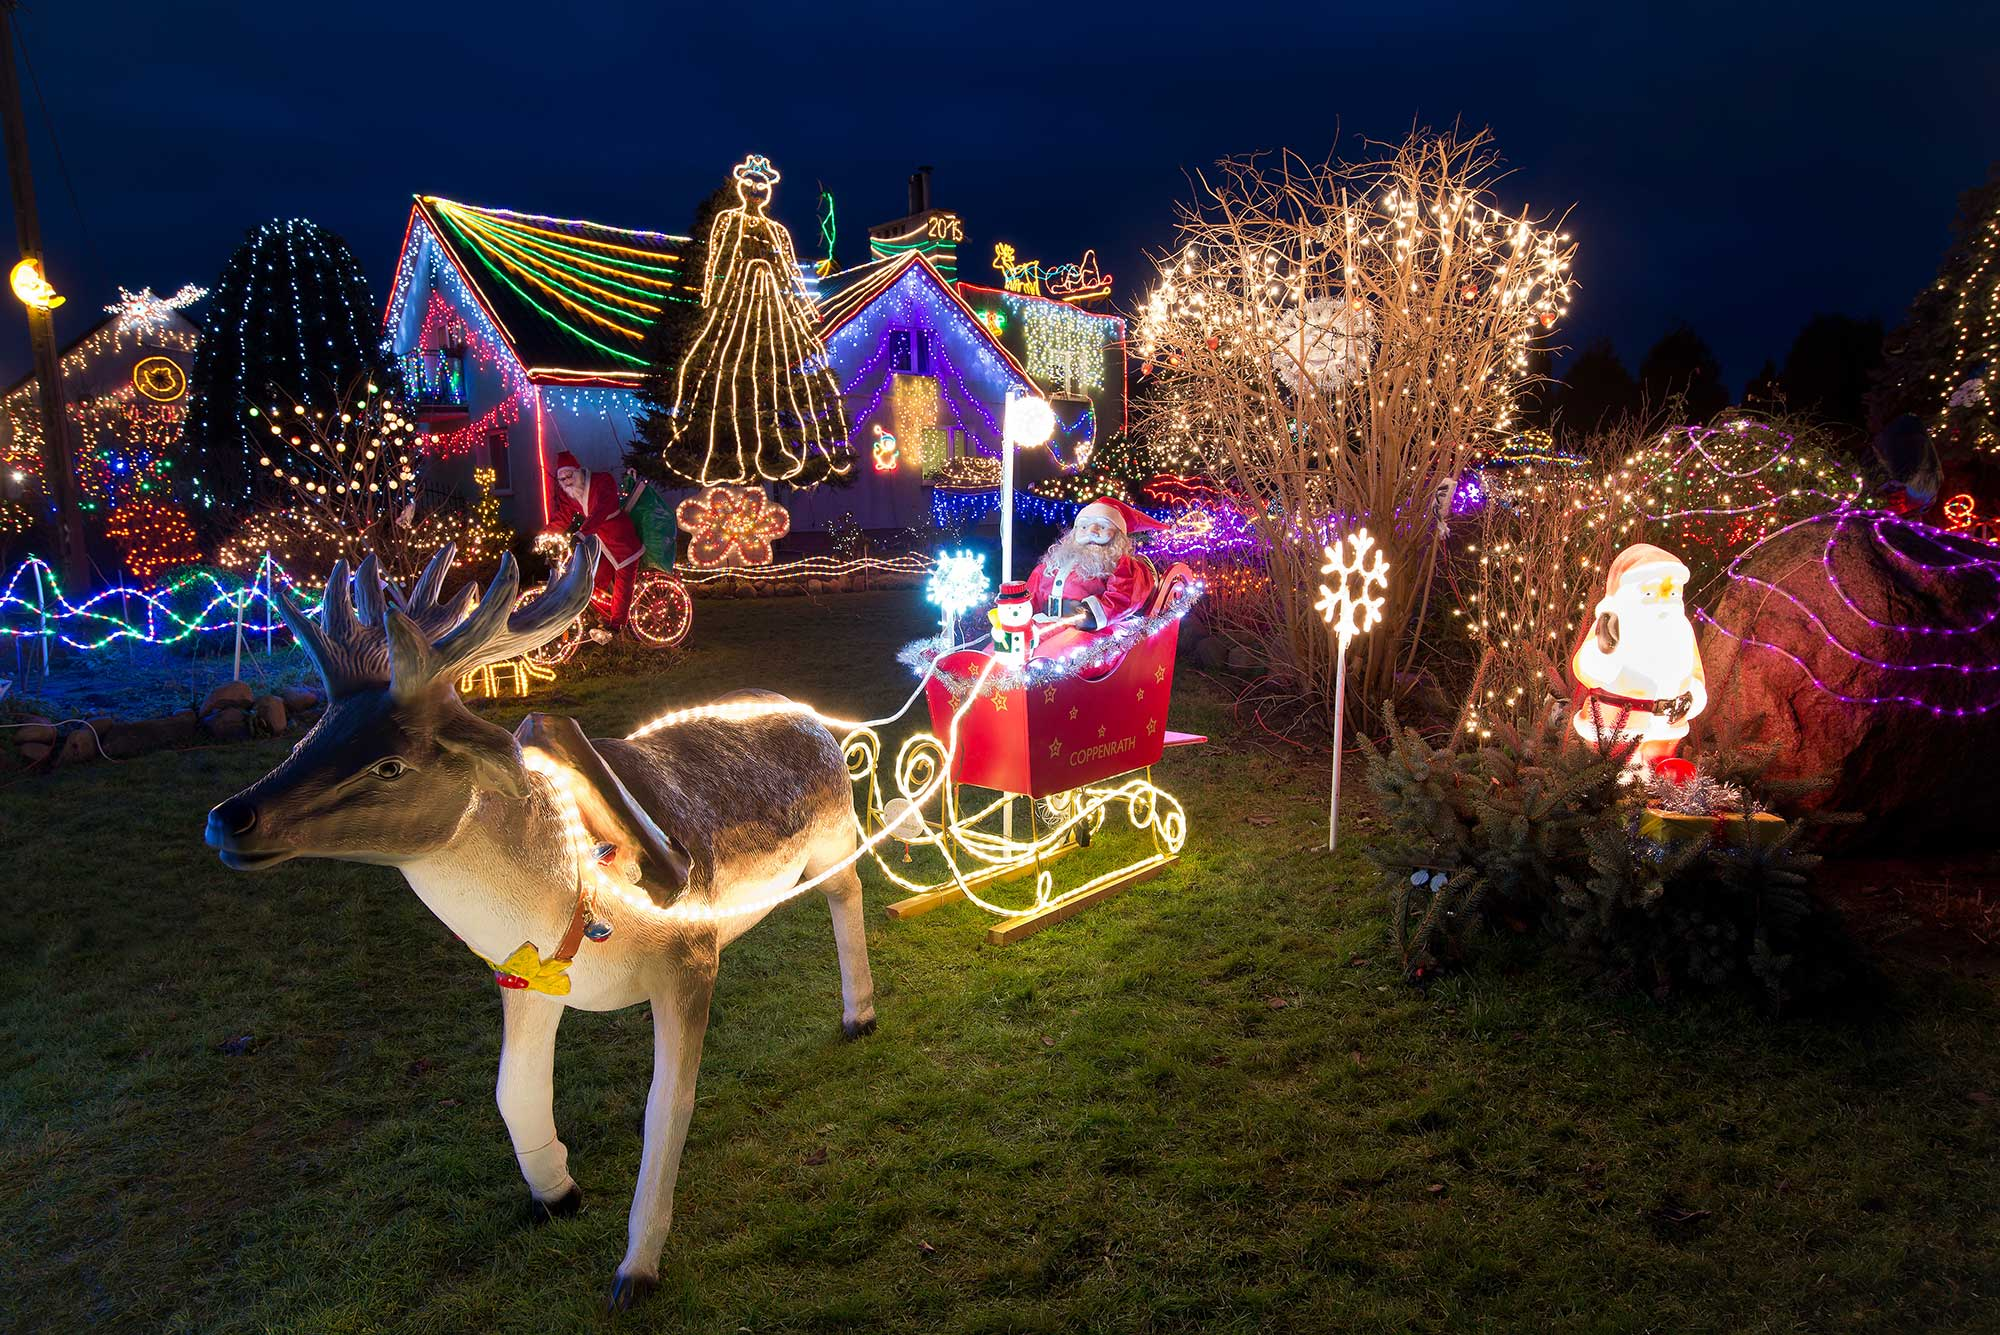 Visit the Best Places for Christmas Lights in Houston Part e